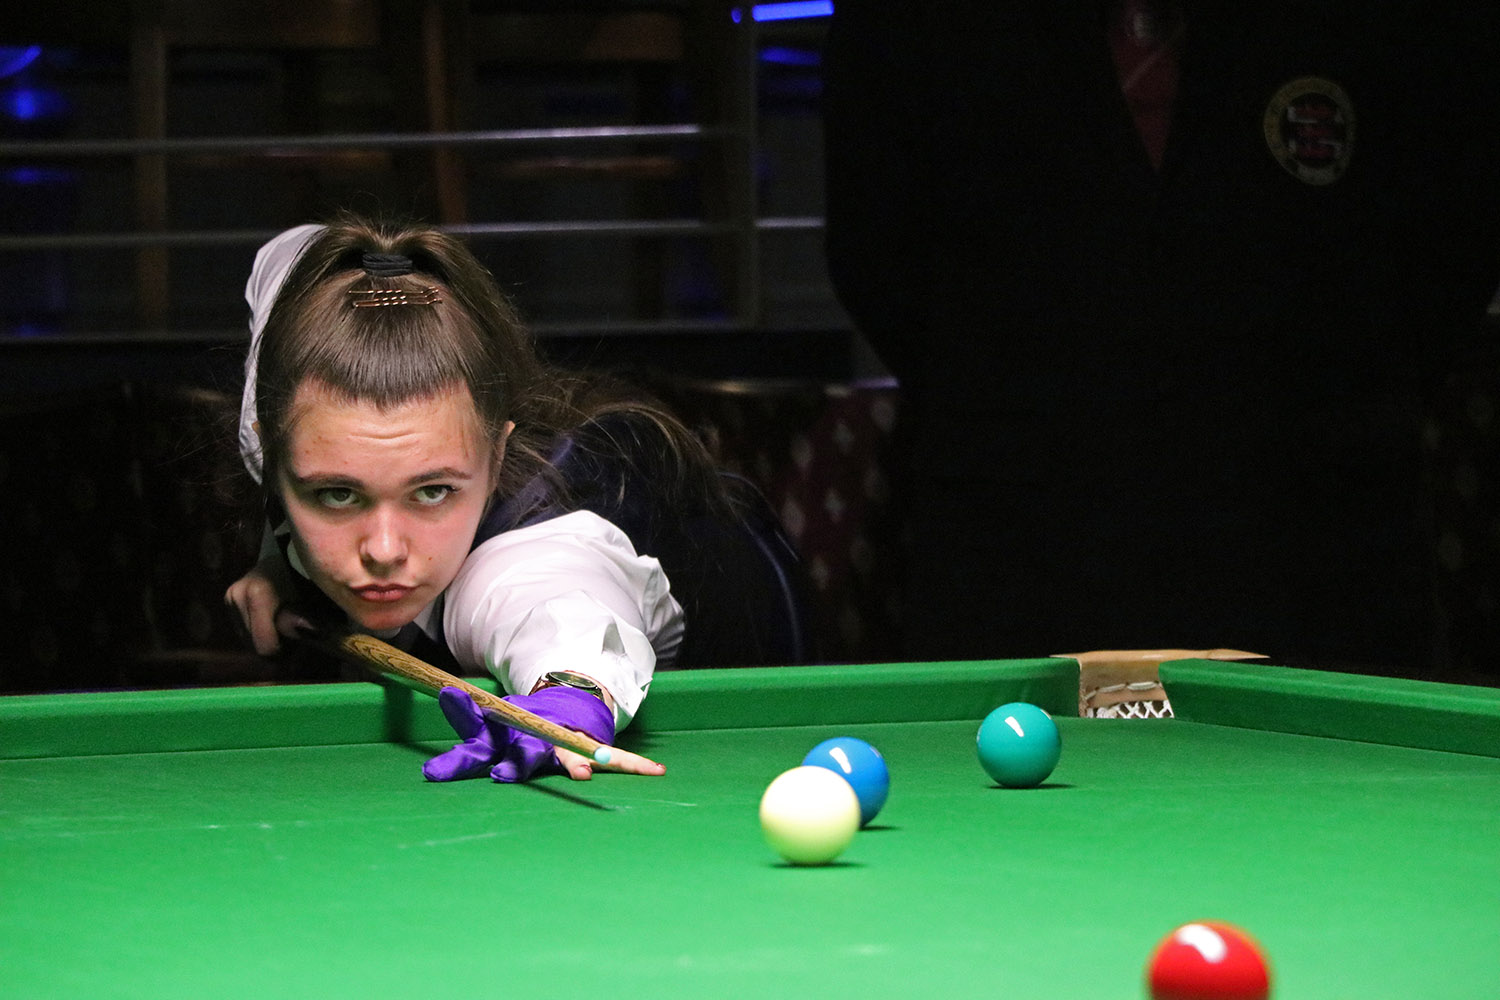 Chloe White plays snooker shot